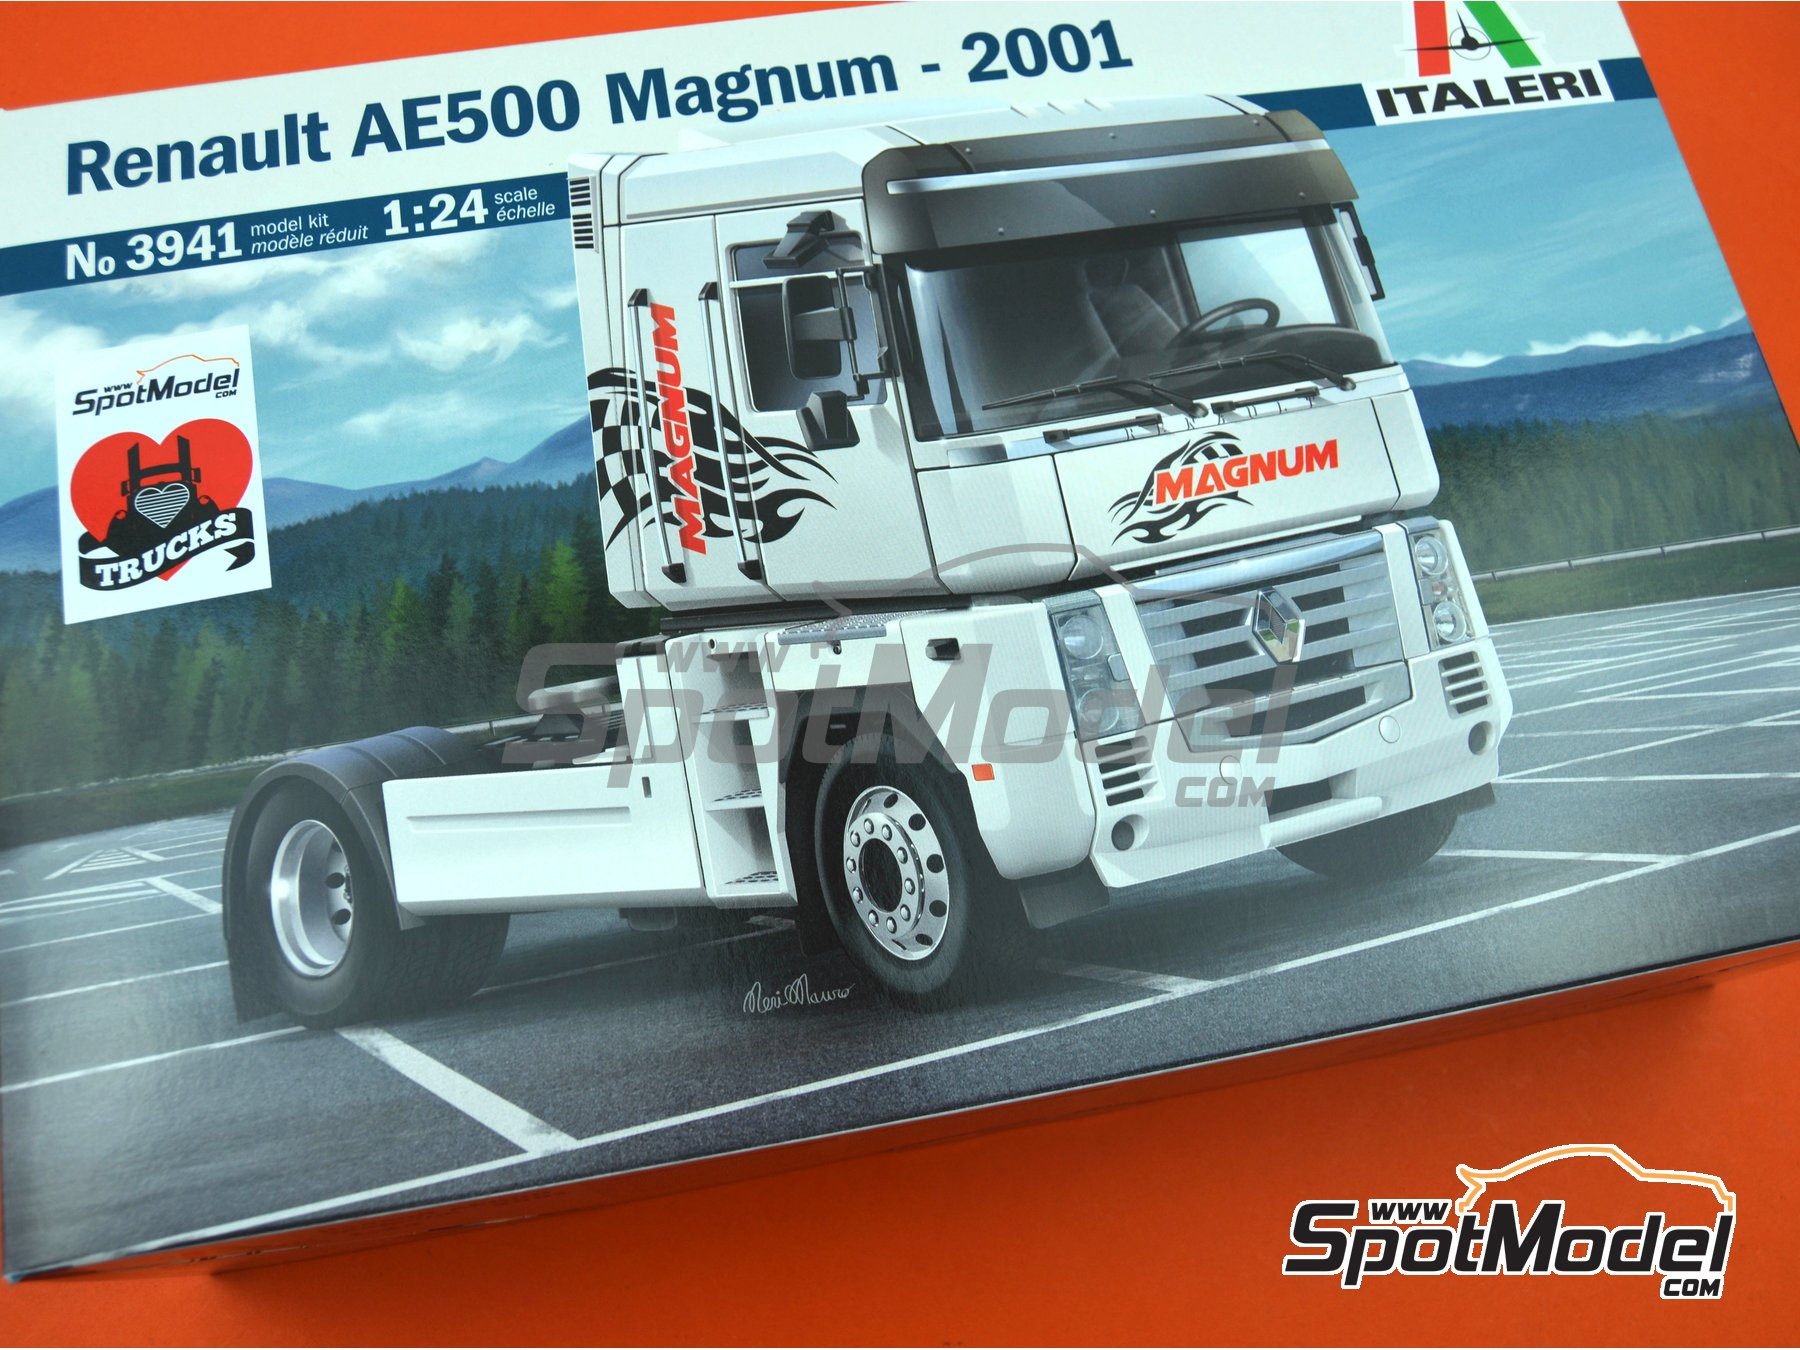 Image 21: Renault AE 500 Magnum -  2001 | Model truck kit in 1/24 scale manufactured by Italeri (ref. 3941, also ITA3941, CO_33-3941 and IT3941)